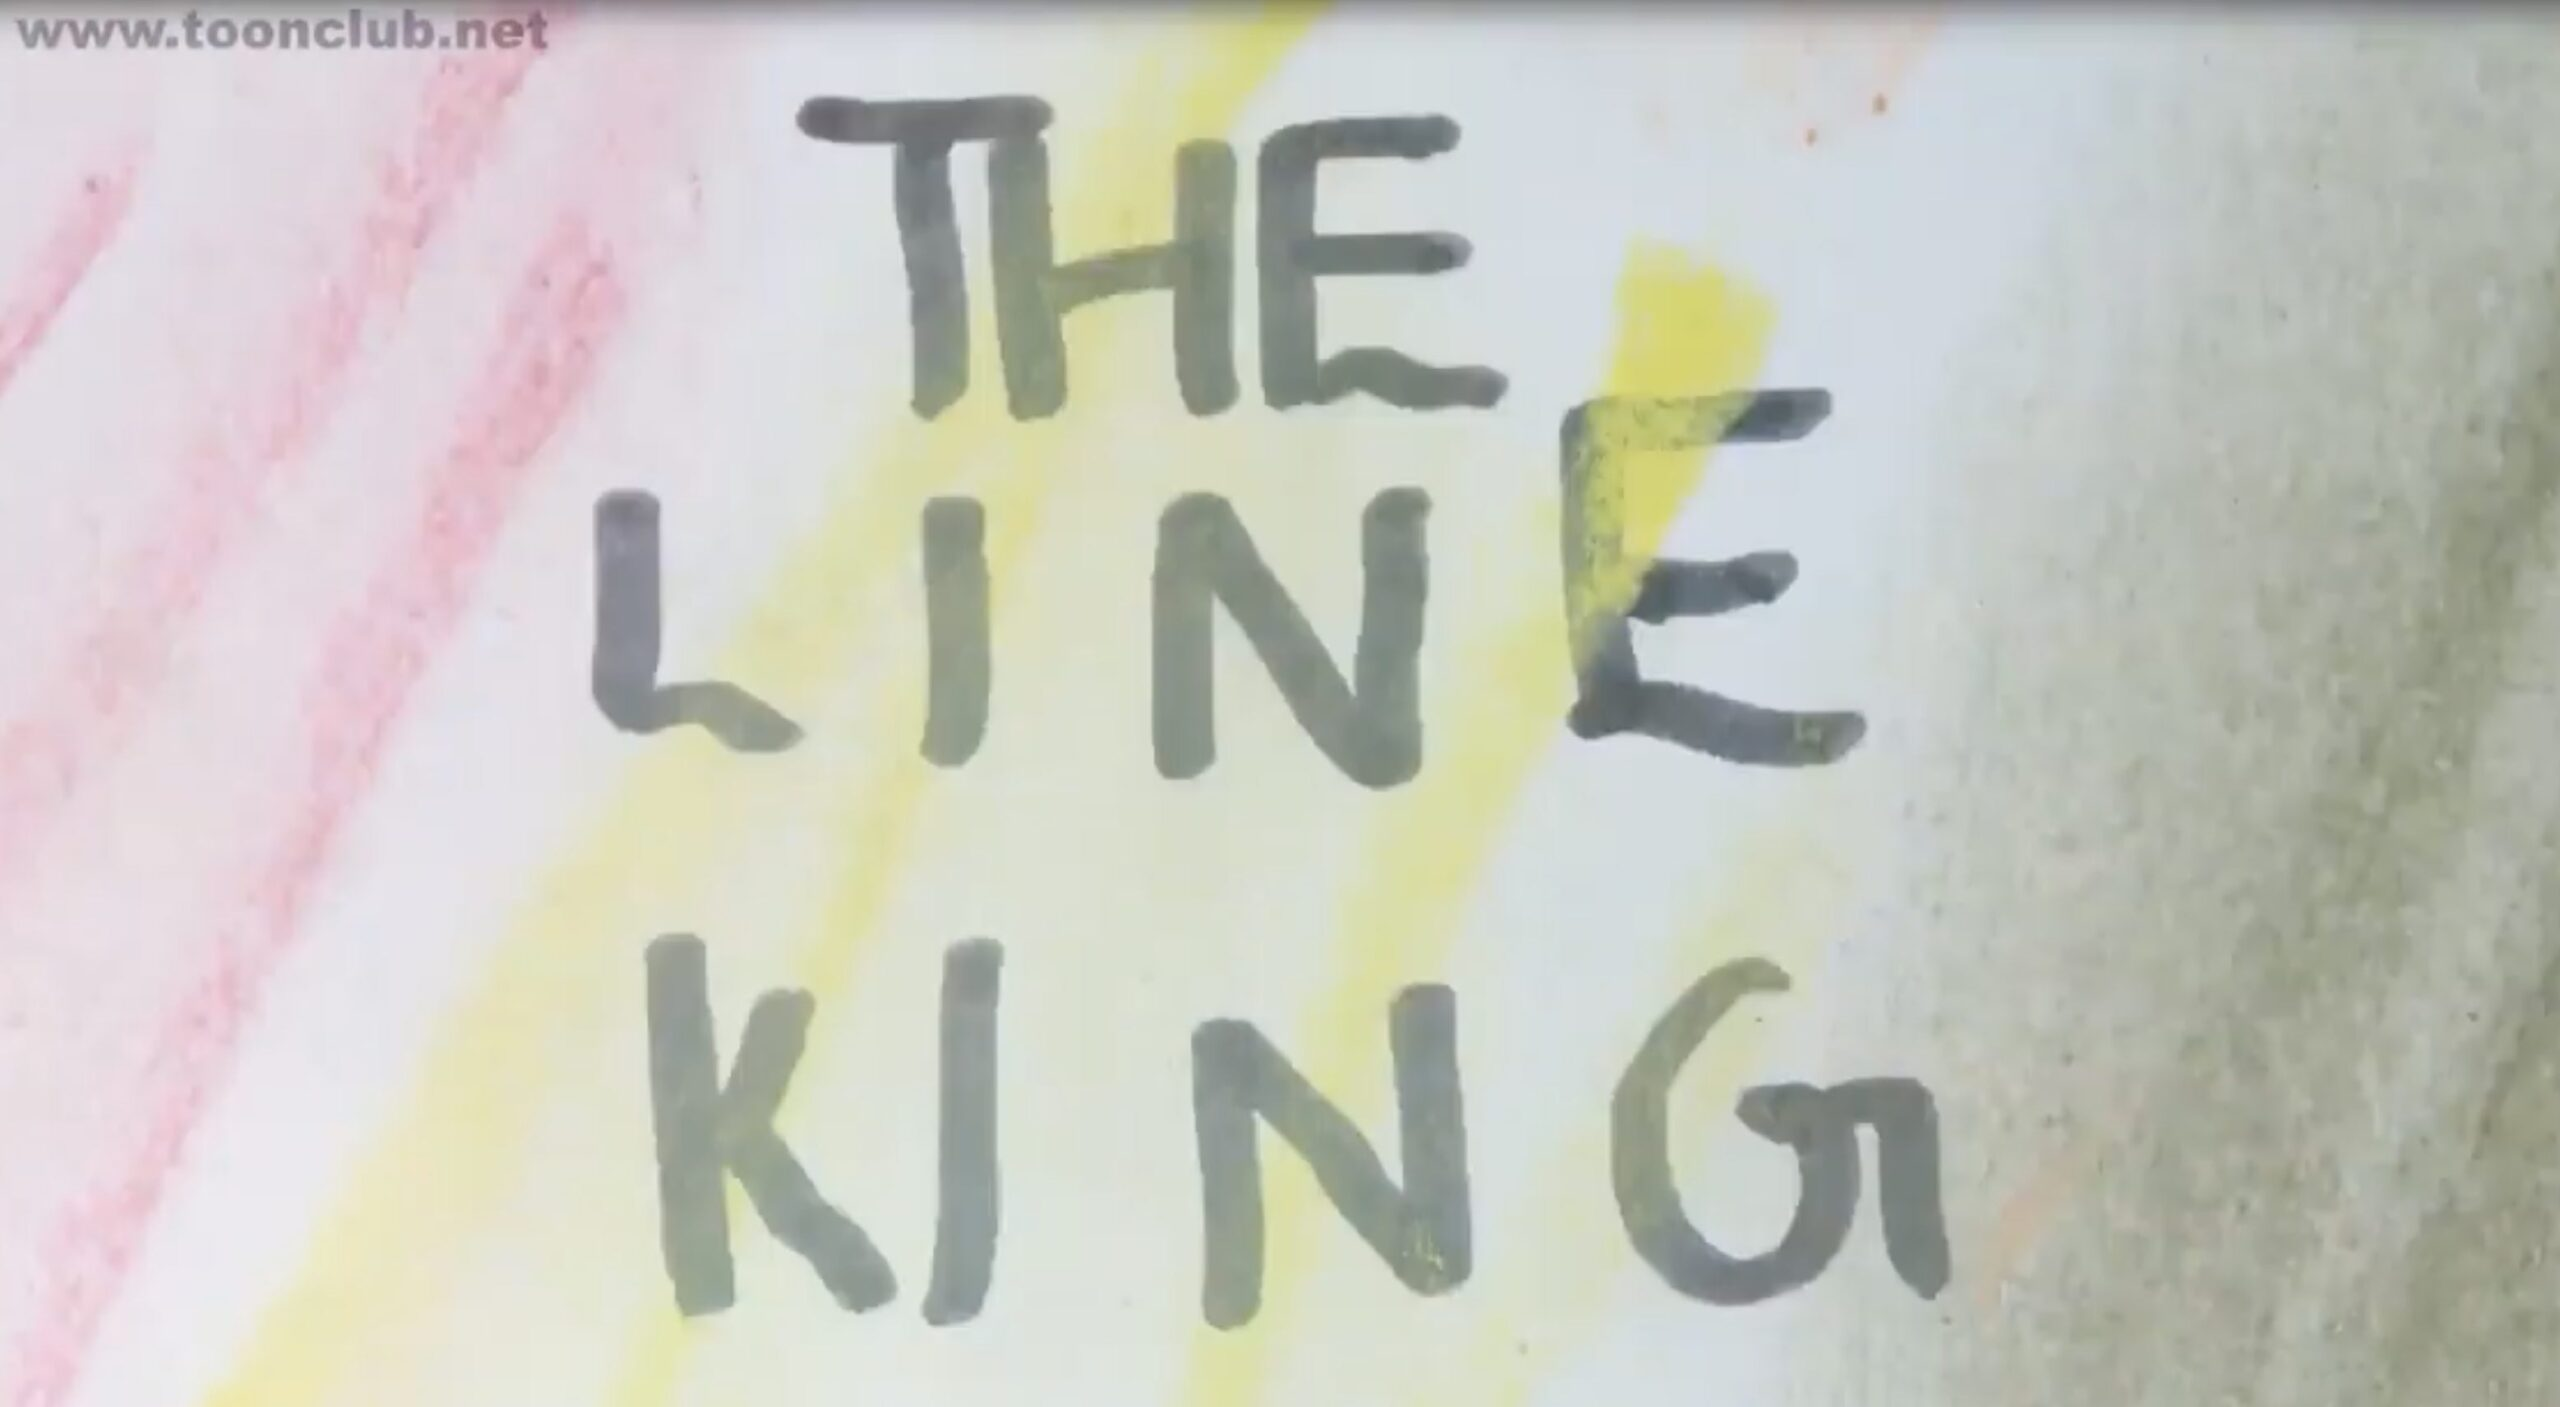 Line king text